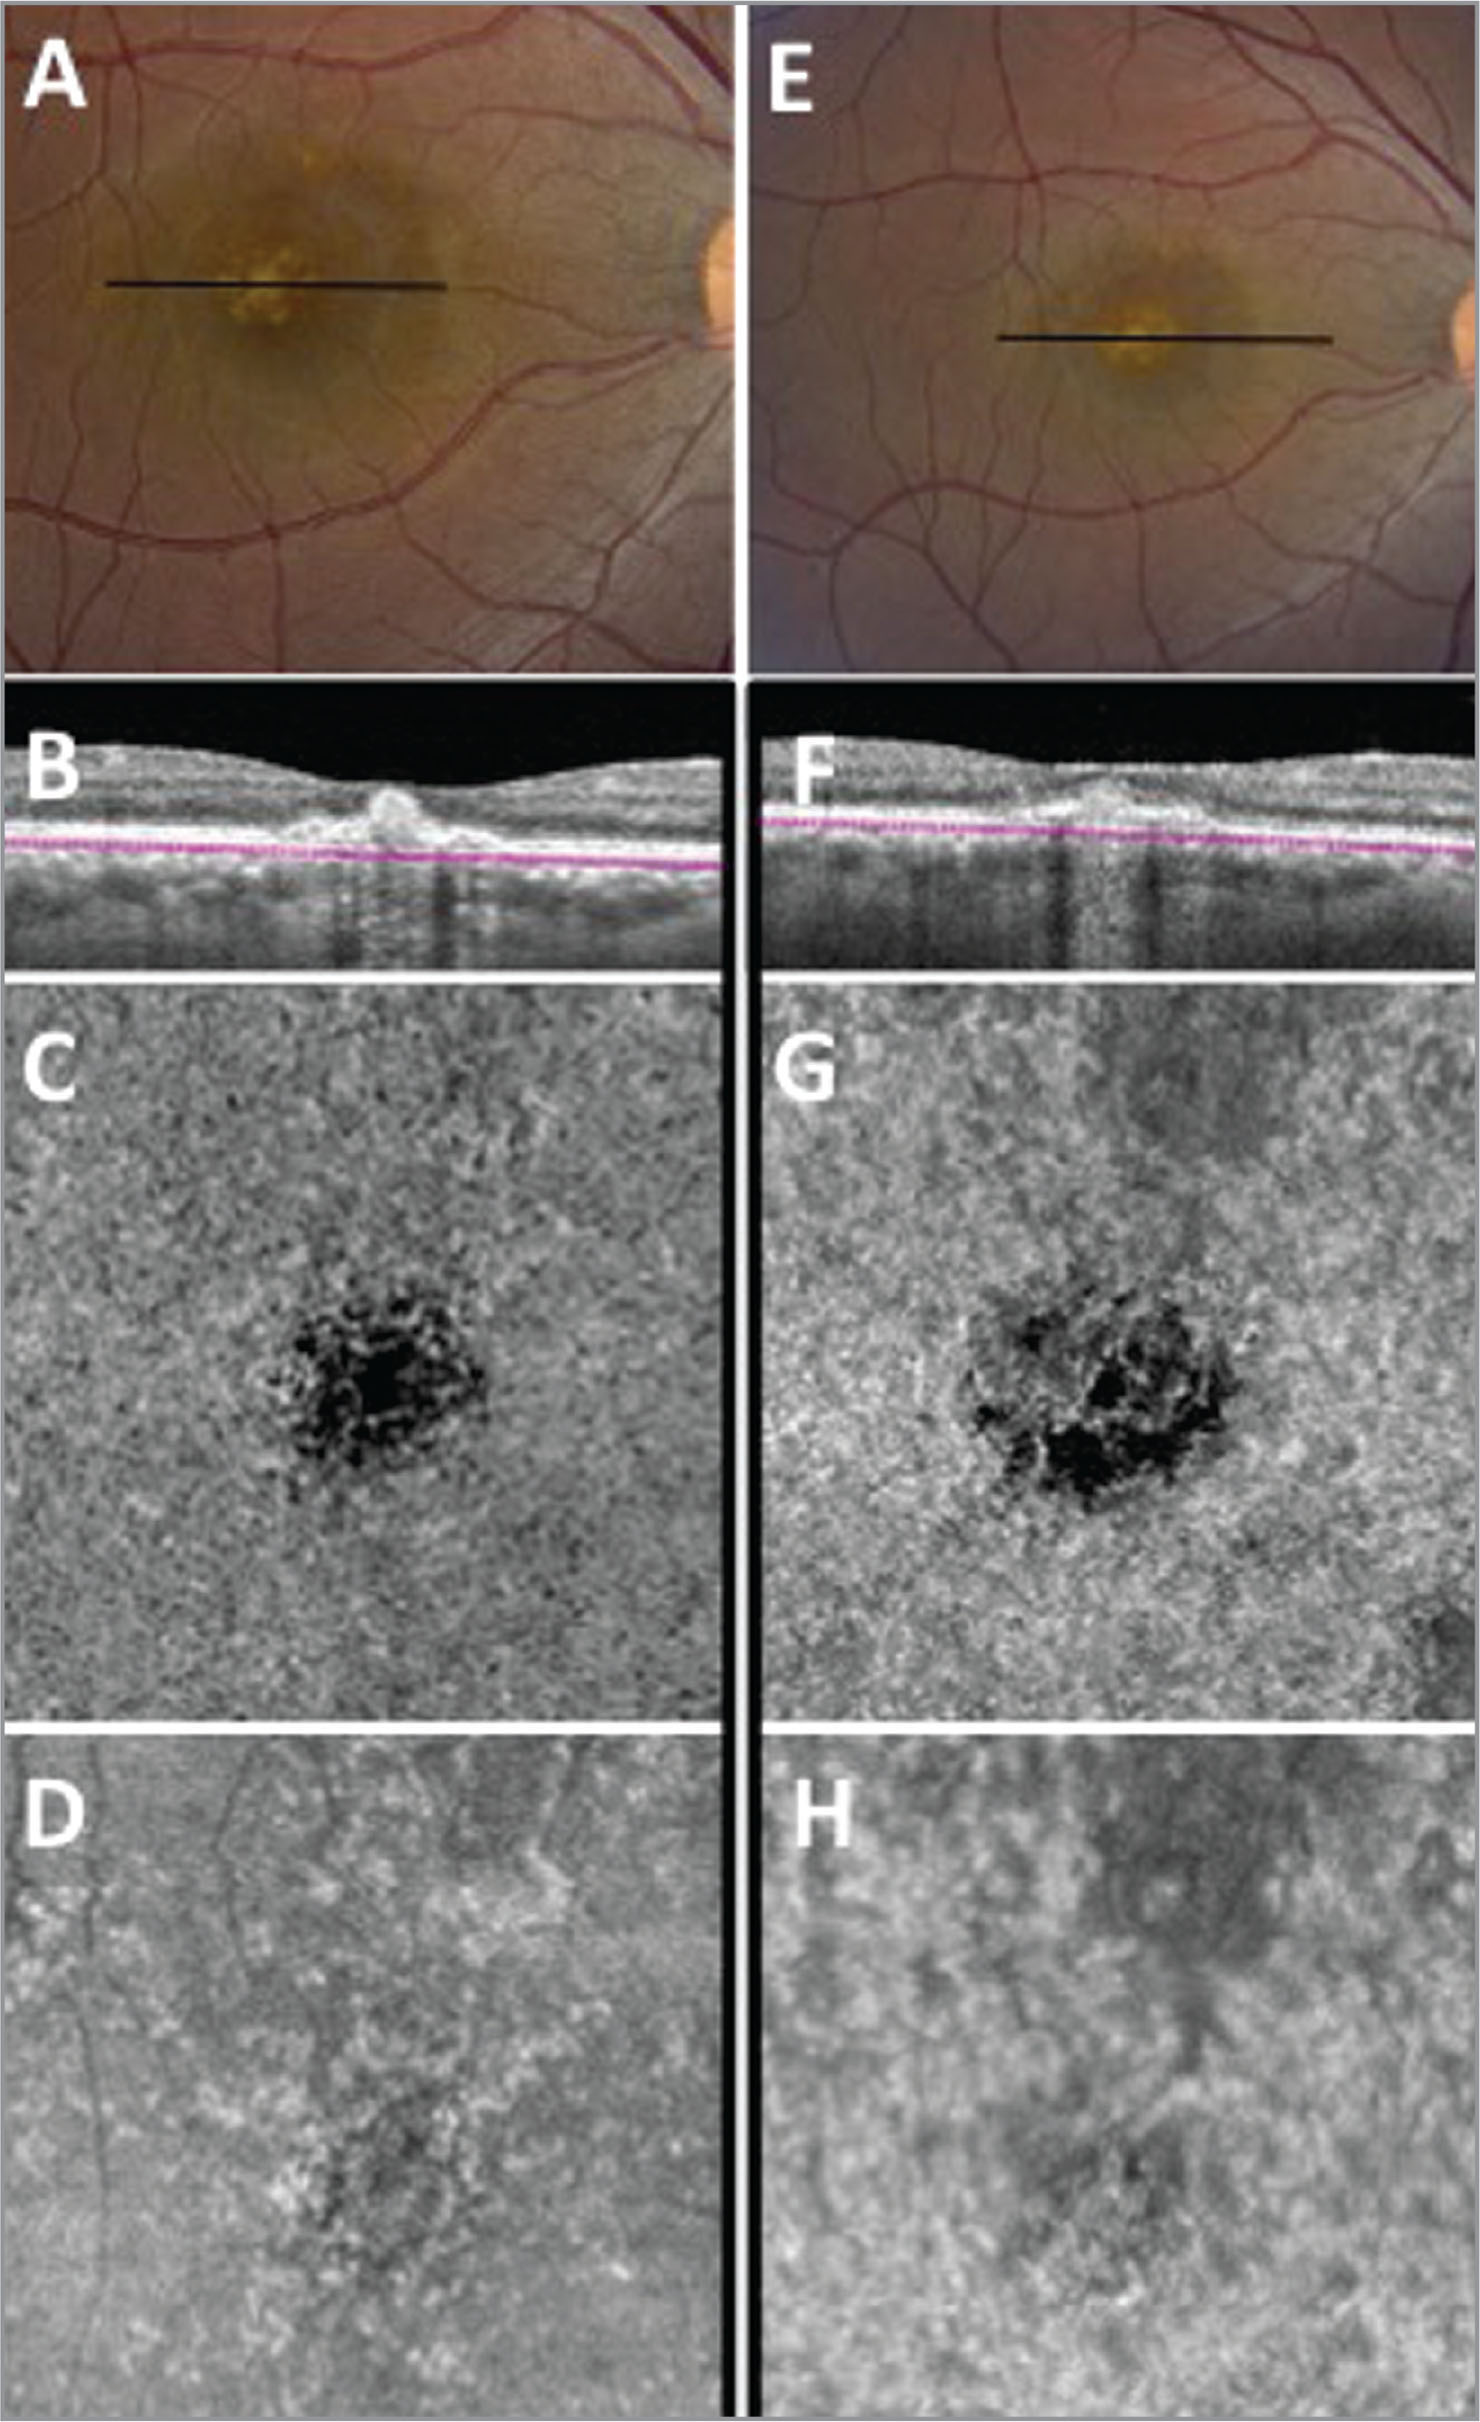 Imaging from weeks 13 and 17 after presentation, before and after bevacizumab therapy. (A) Color fundus image demonstrating persistence of the subfoveal retinal pigment epithelial detachment (PED) 13 weeks after presentation. The line indicates the location of the swept-source optical coherence tomography angiography (SS-OCTA) B-scan in (B). (B) SS-OCTA cross-sectional B-scan with the boundaries depicted for the choriocapillaris flow and structural en face images (C) En face flow image of the choriocapillaris 13 weeks after presentation showing a persistent decrease in flow underlying the inflammatory PED. (D) En face structural image of the choriocapillaris showing good signal intensity. (E) Color fundus image demonstrating persistence of the foveal lesion 4 weeks later, after an injection of intravitreal bevacizumab. The line indicates the location of the subsequent SS-OCTA B-scan in (F). (F) SS-OCTA cross-sectional B-scan with segmentation boundaries for the choriocapillaris. (G) En face flow image of the choriocapillaris with a persistent decrease in flow underlying the PED. (H) En face structural image of the choriocapillaris showing a good signal in the area of decreased choriocapillaris flow underlying the lesion.